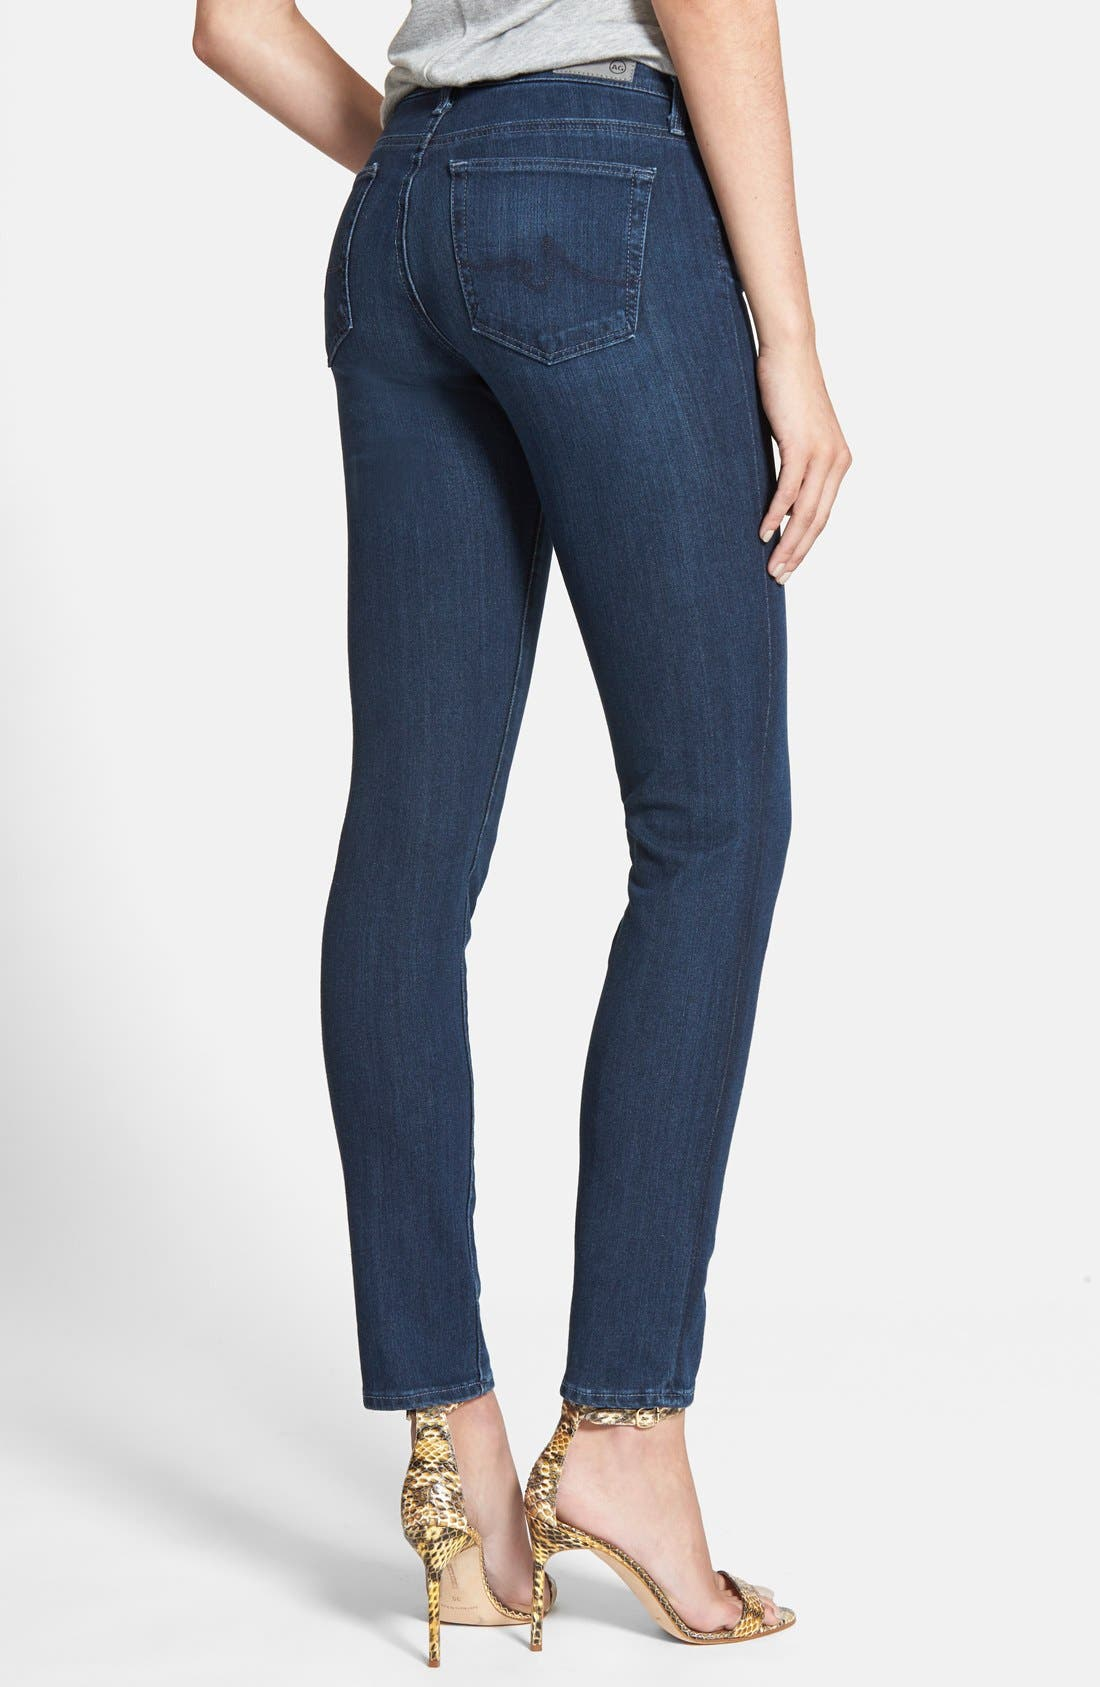 'Contour 360 - The Prima' Cigarette Leg Skinny Jeans,                             Alternate thumbnail 4, color,                             400